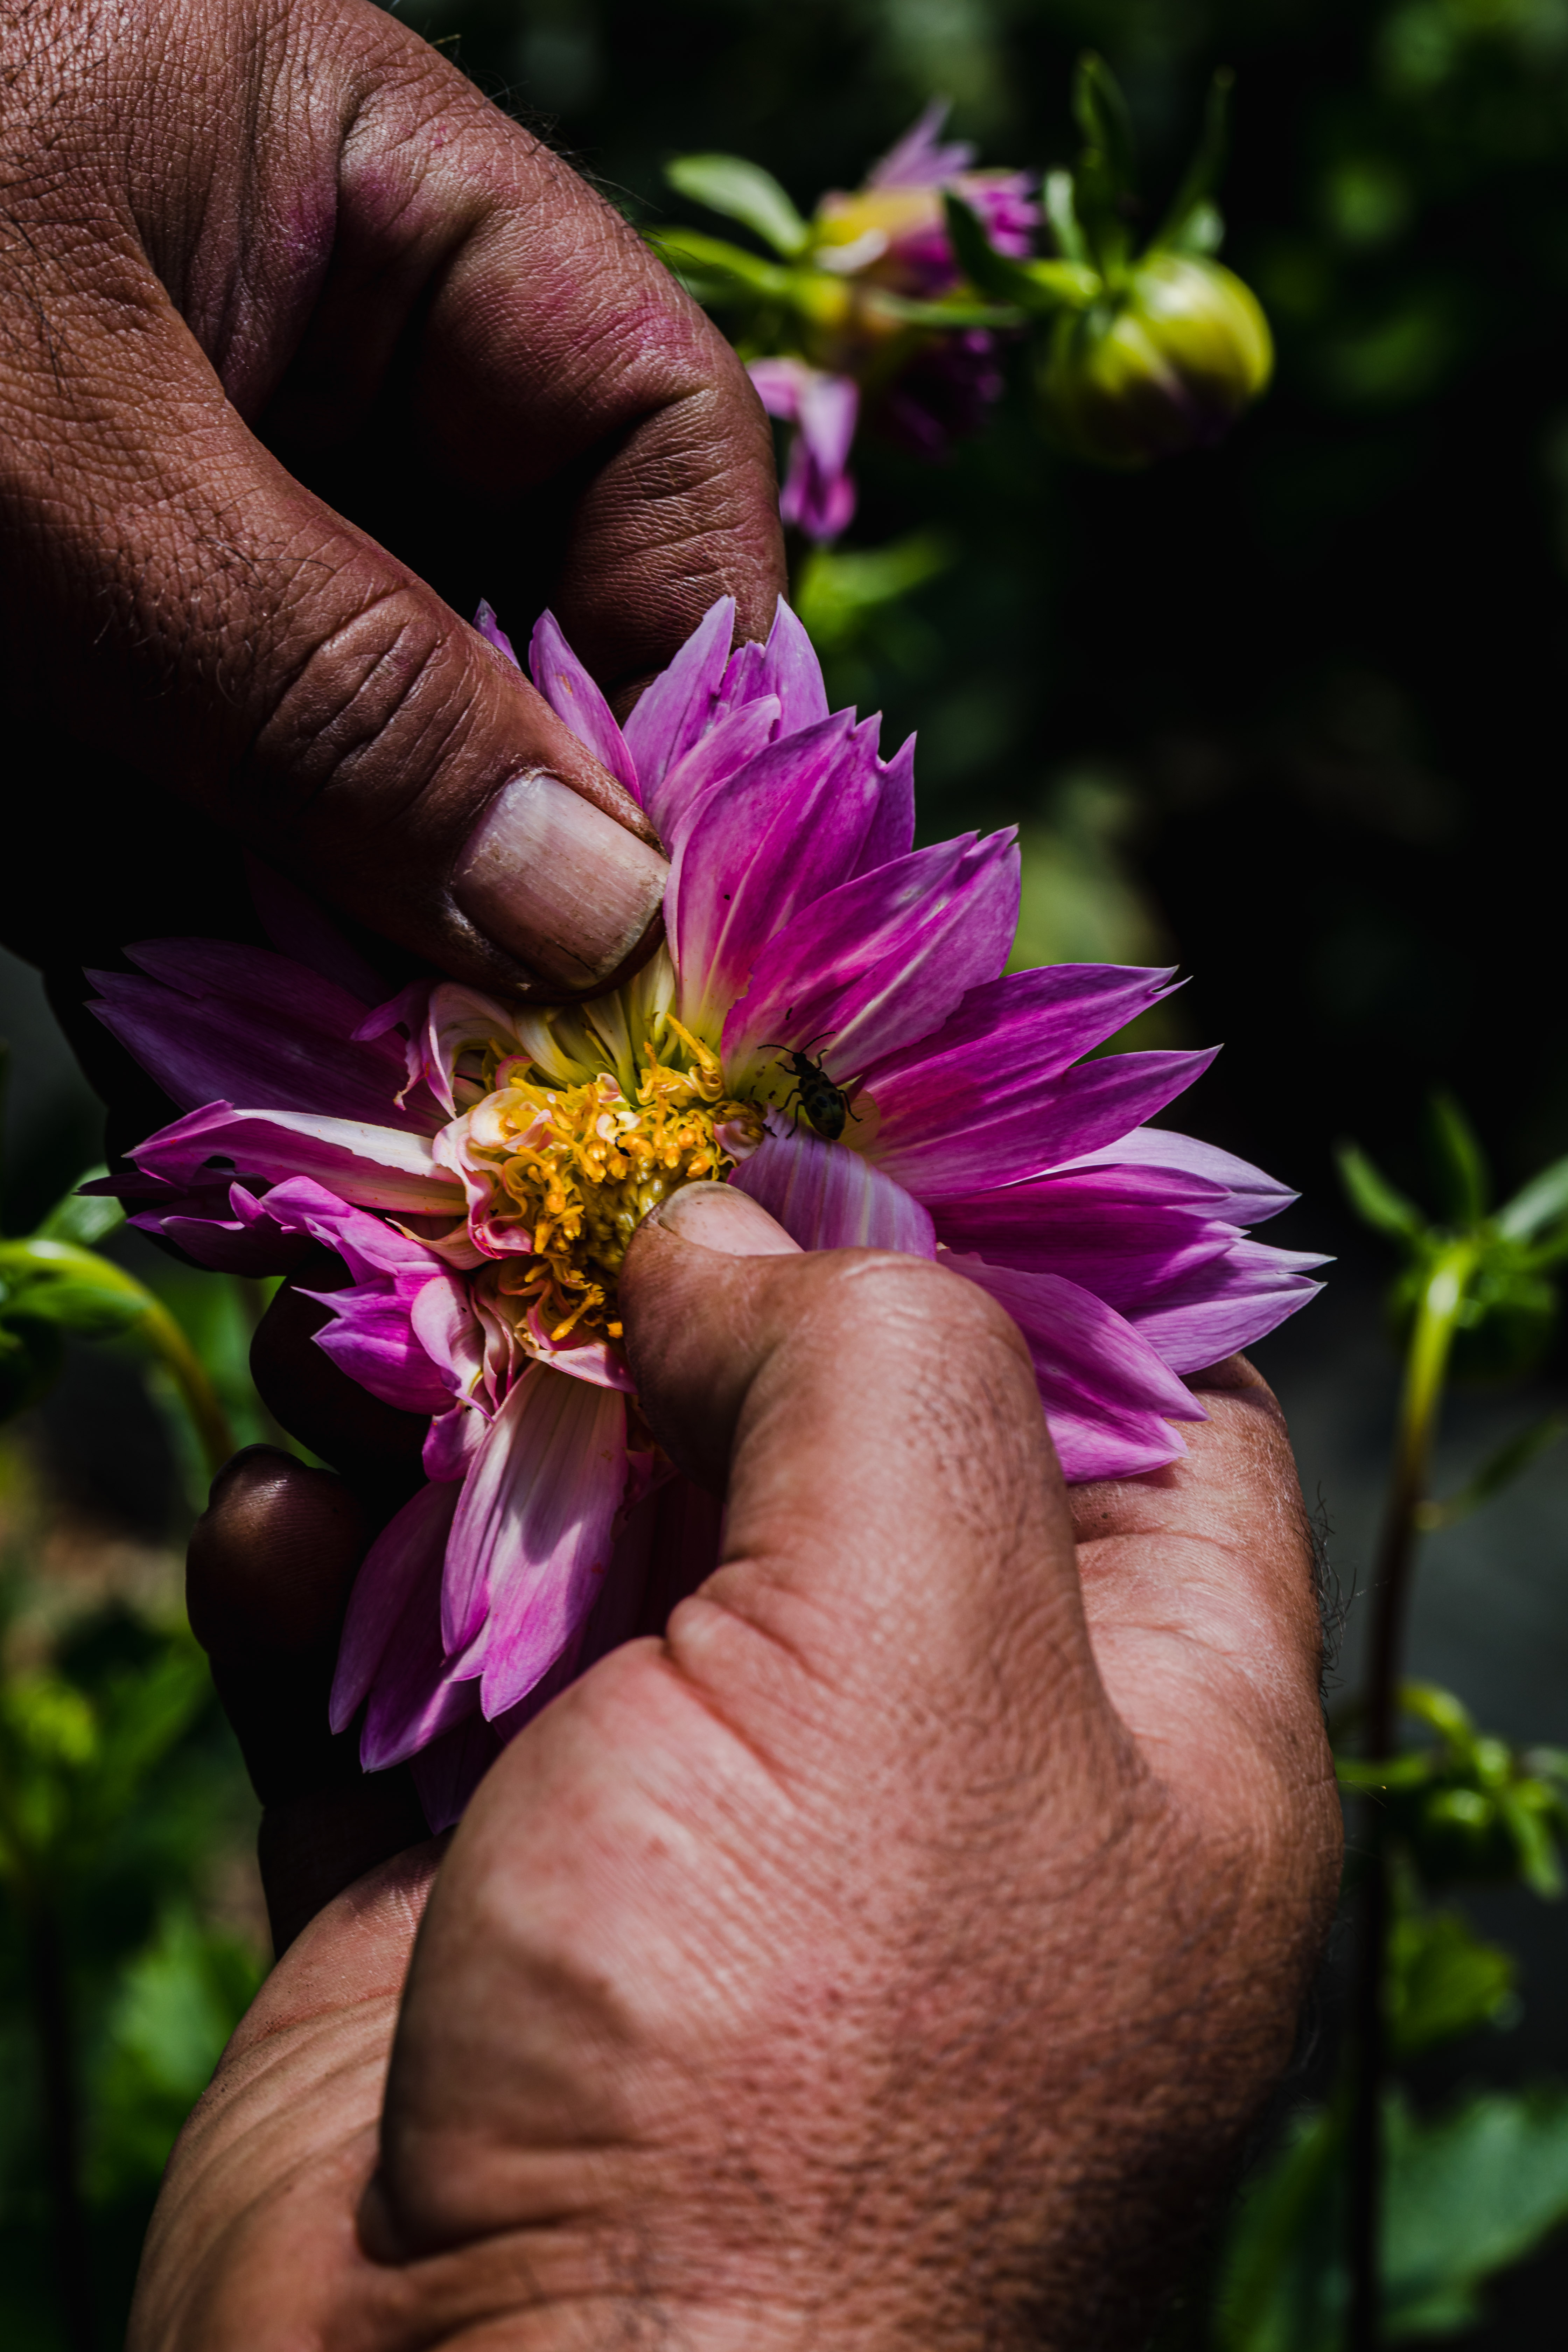 JSM Organics founder, Javier Zamora, showing off the bees pollinating their fresh flowers.